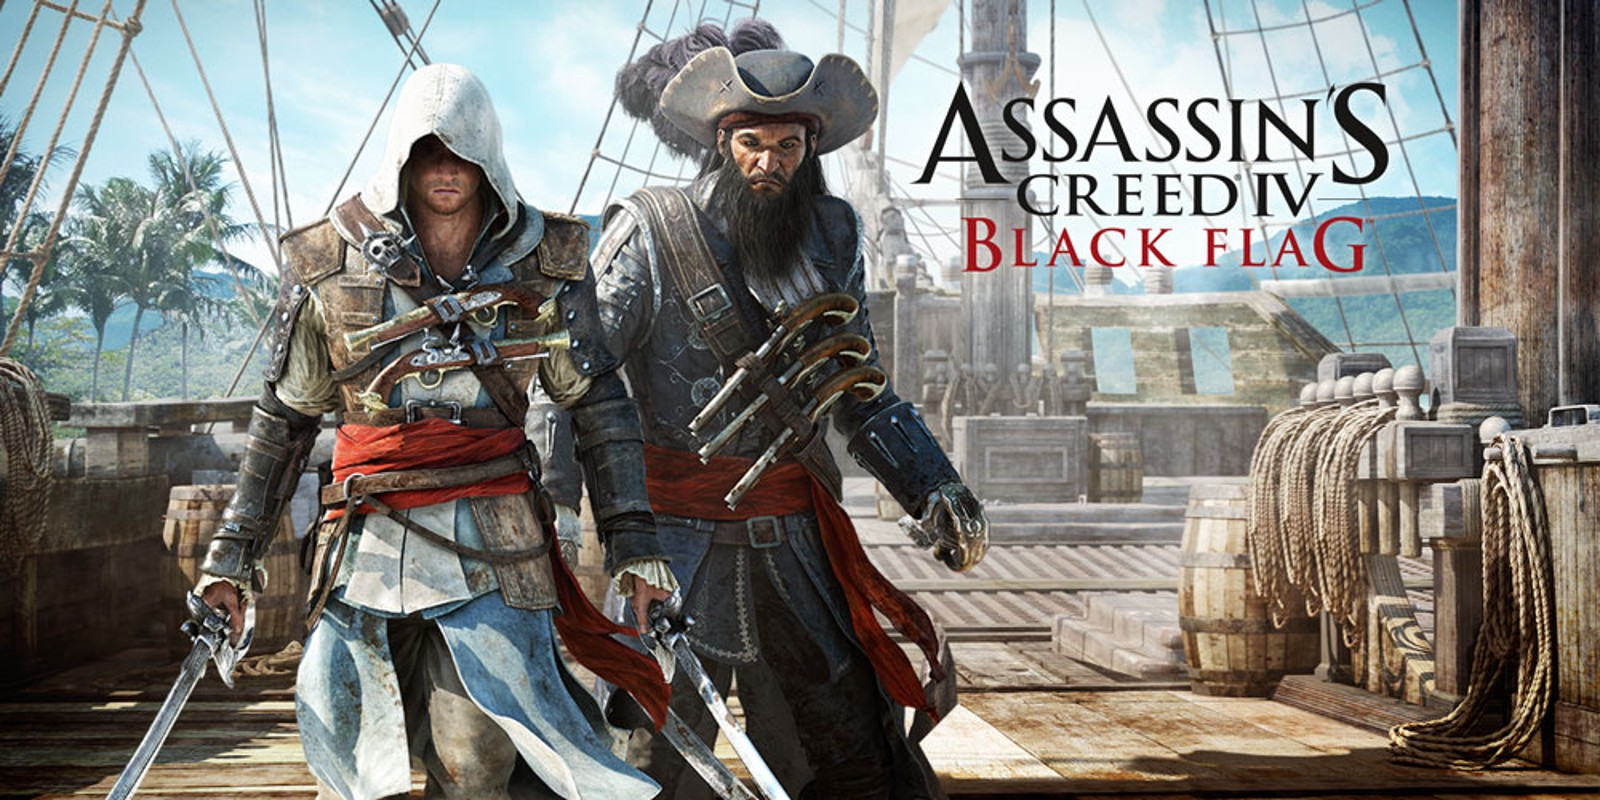 Assassins Creed Black Flag Quick Codes